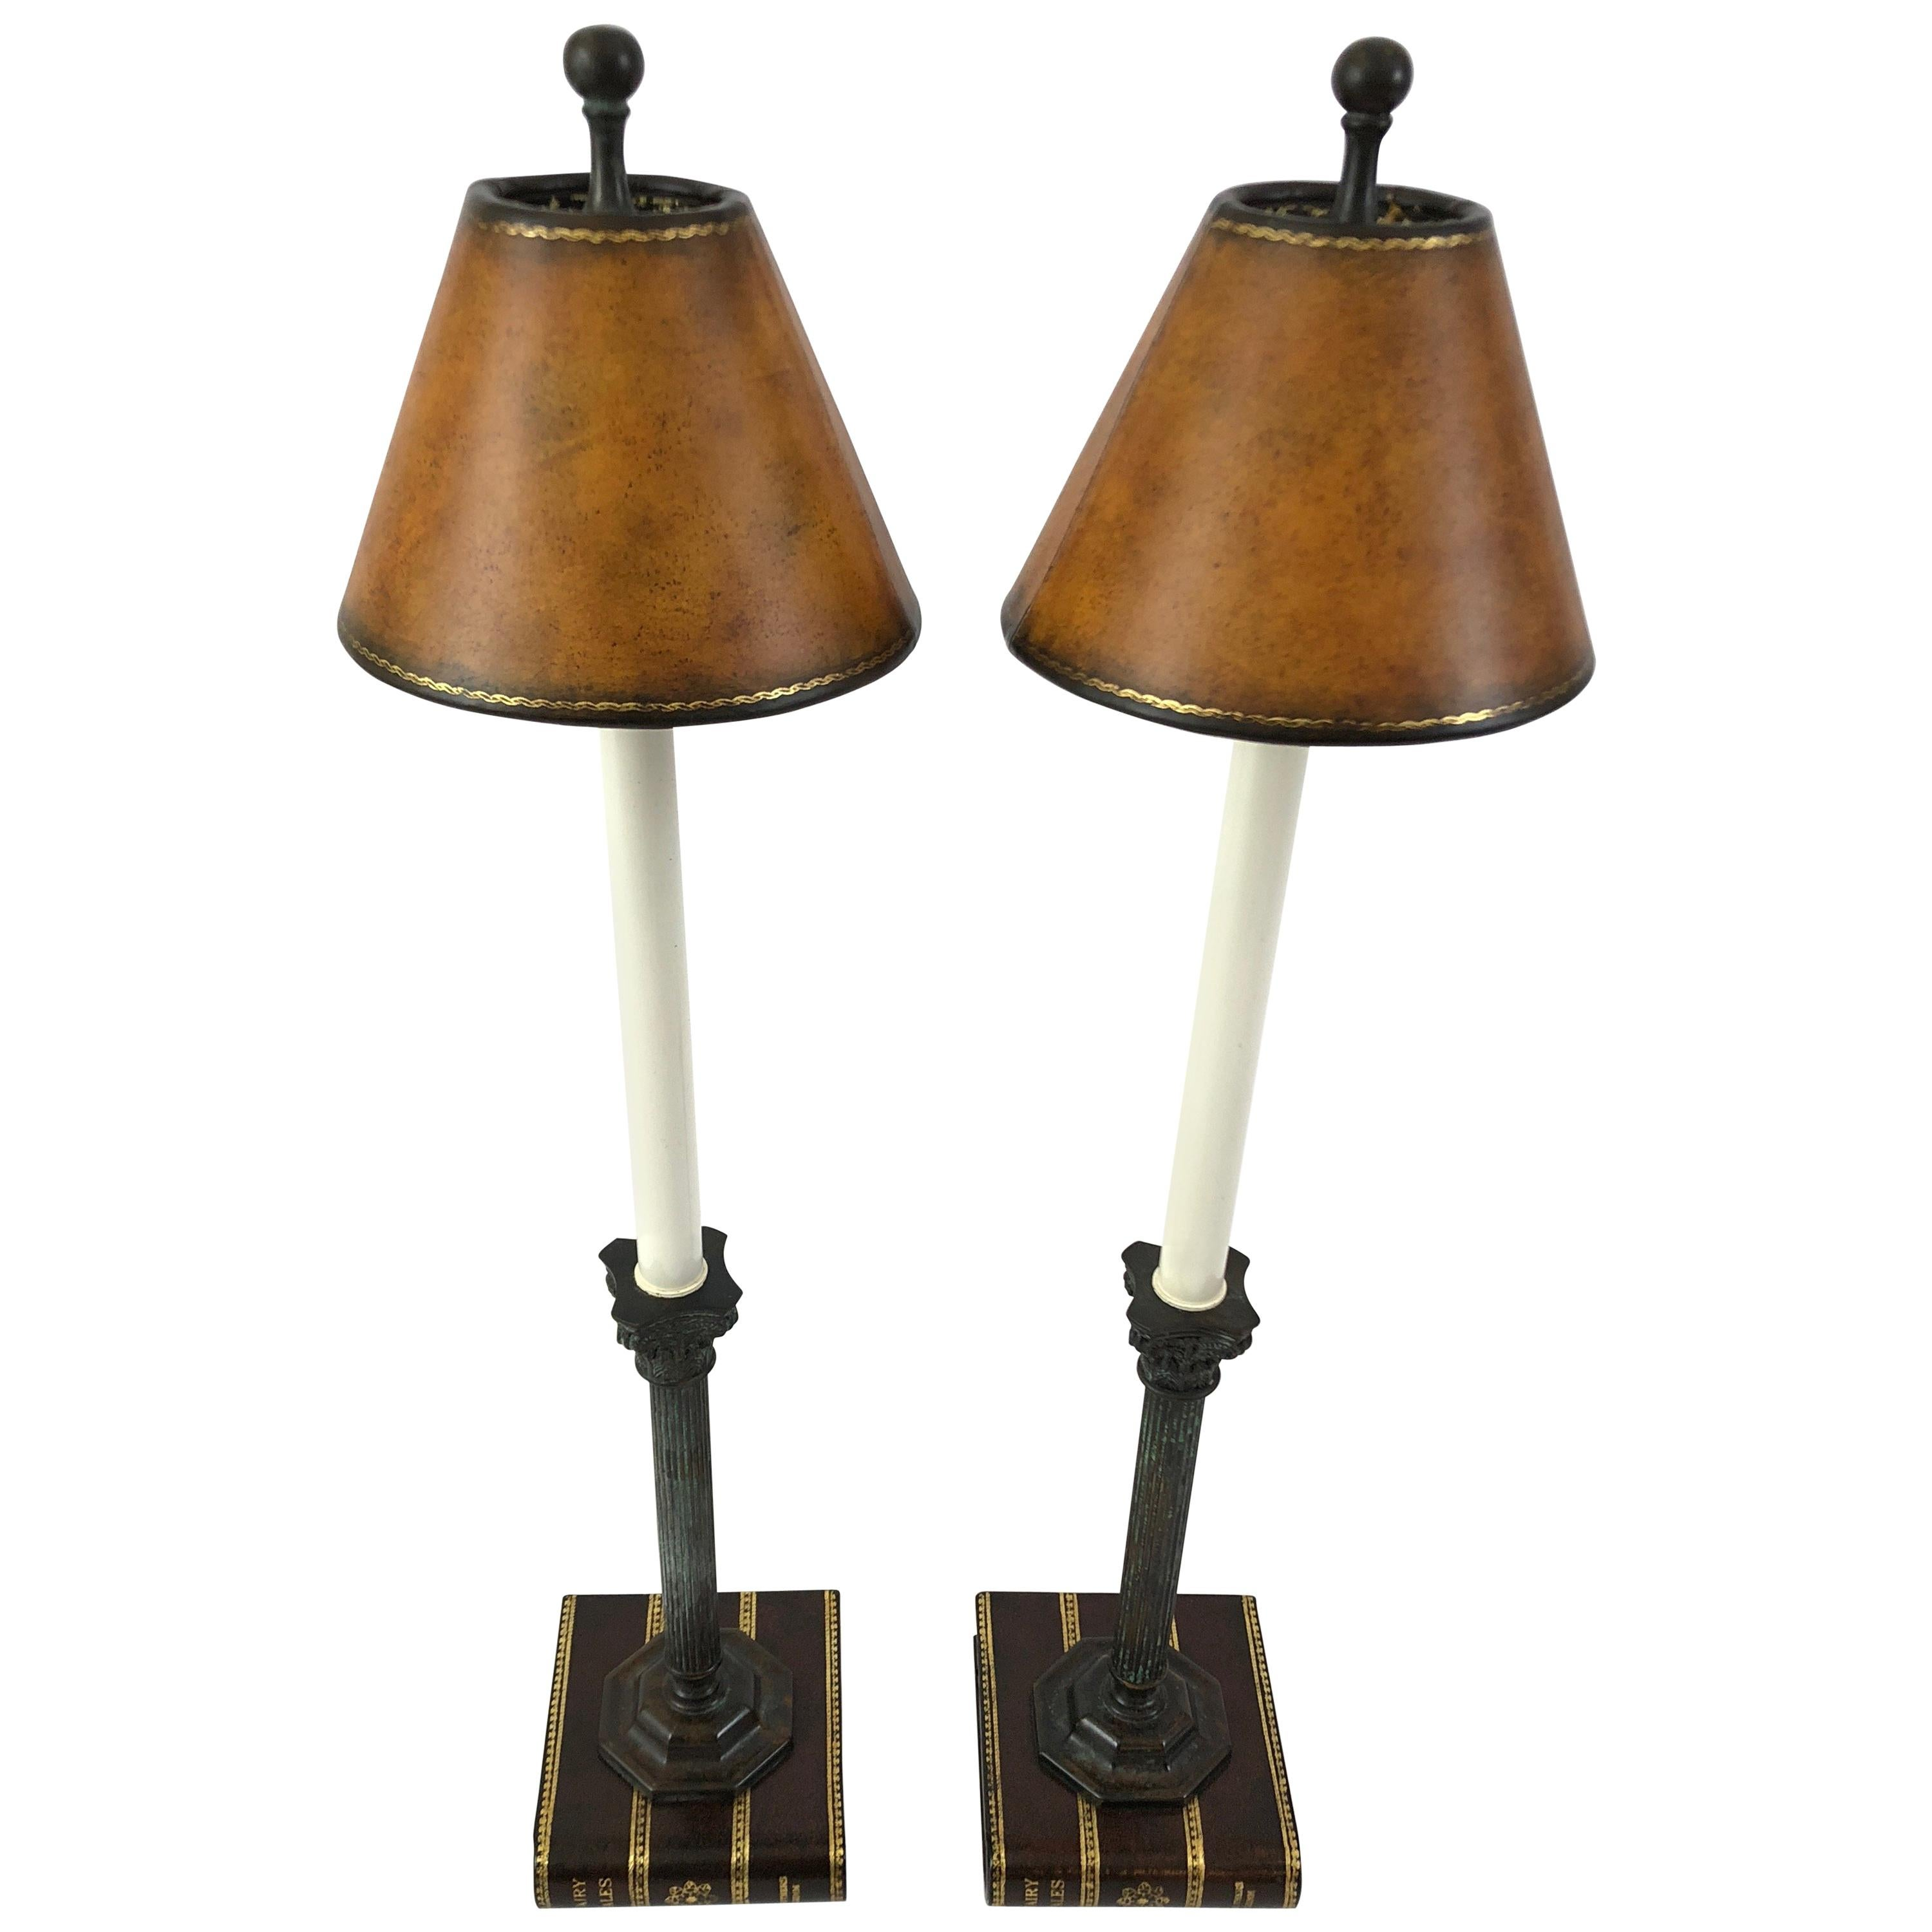 Clever Pair Of Maitland Smith Trompe Lu0027oeil Book And Column Table Lamps